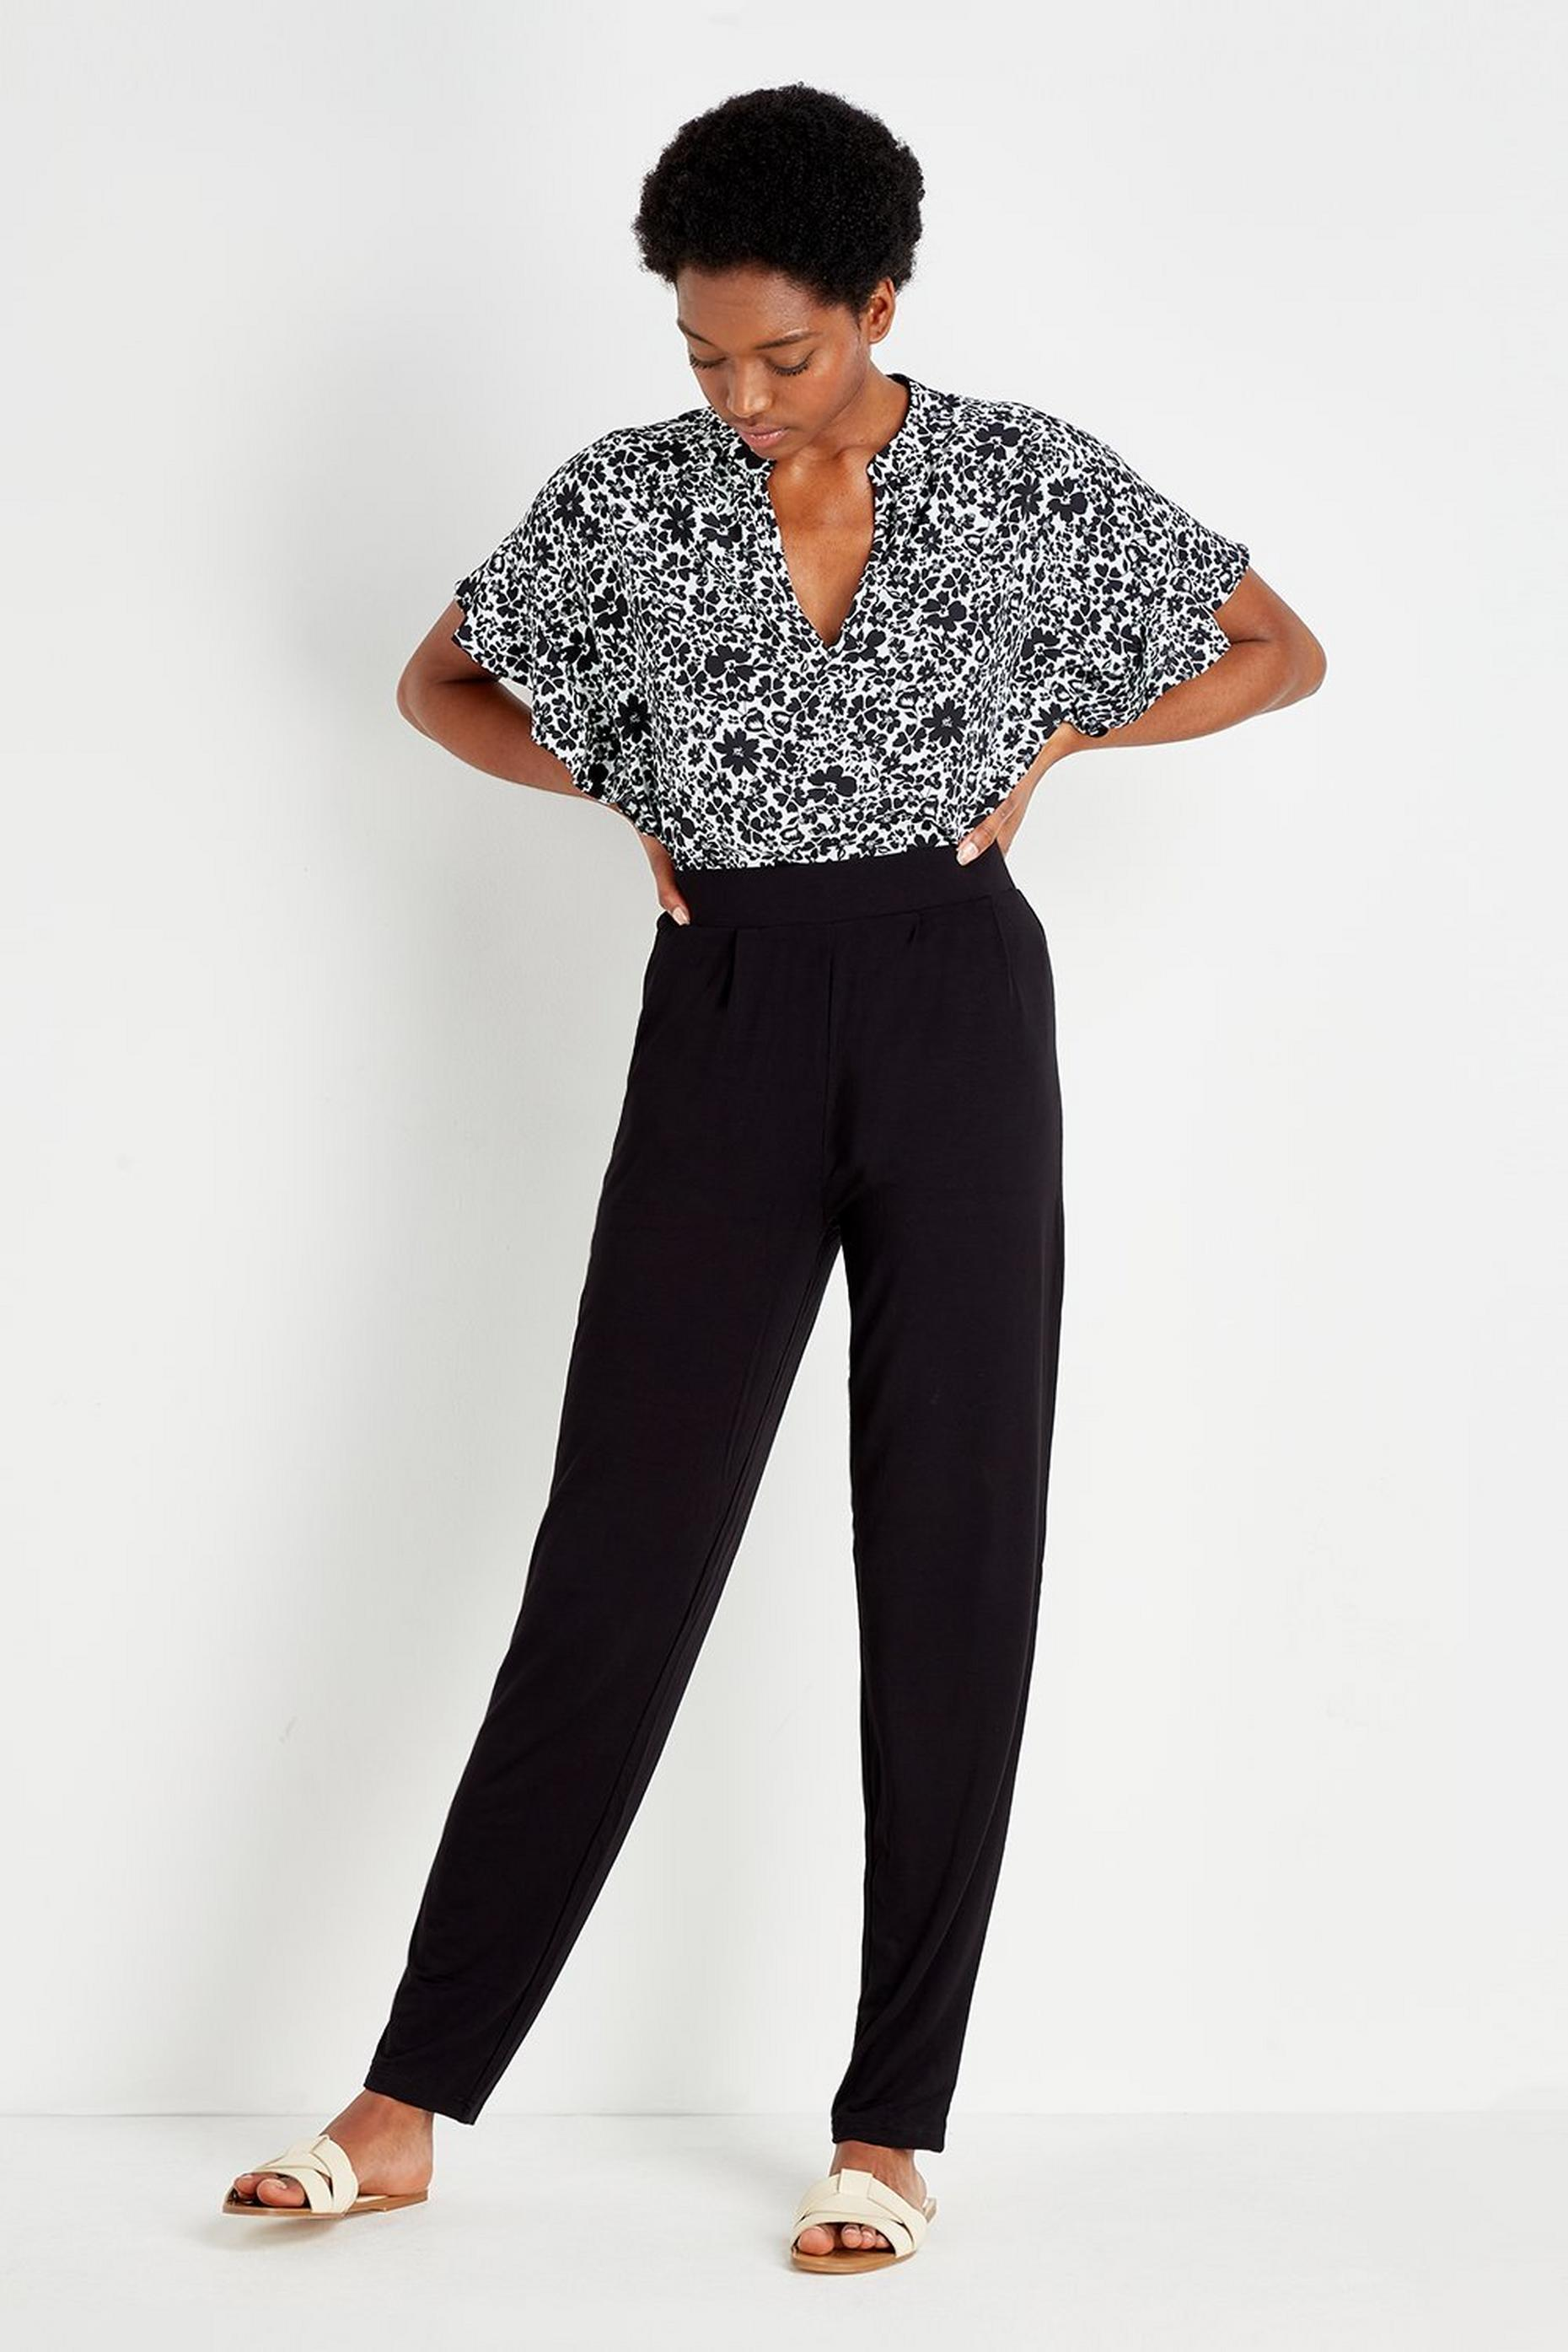 TALL Black Tapered Trousers